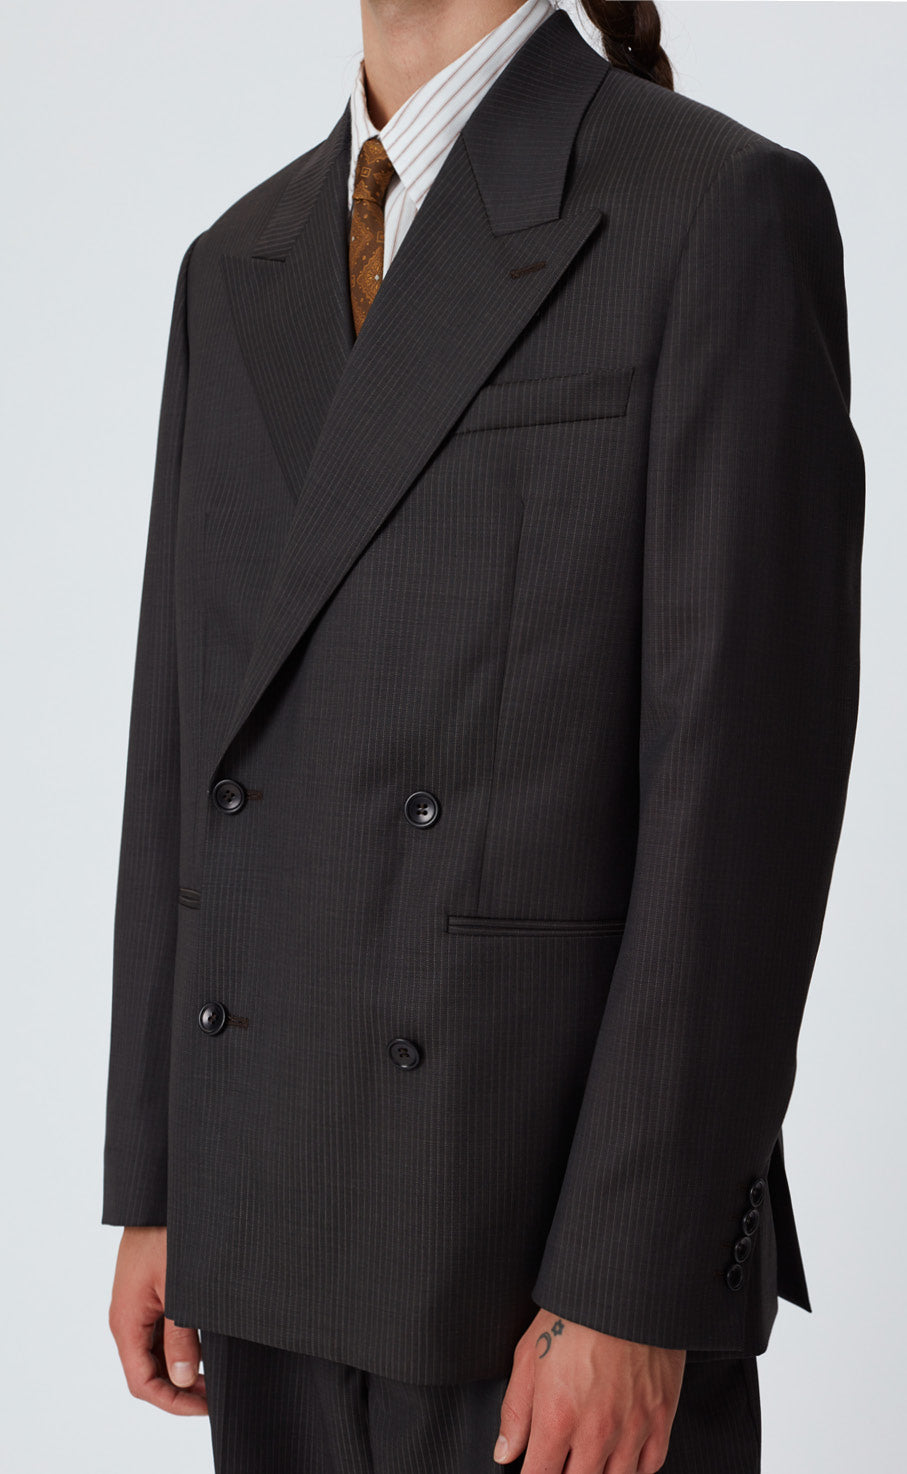 DOUBLE BREASTED BLAZER - PINSTRIPE BLACK